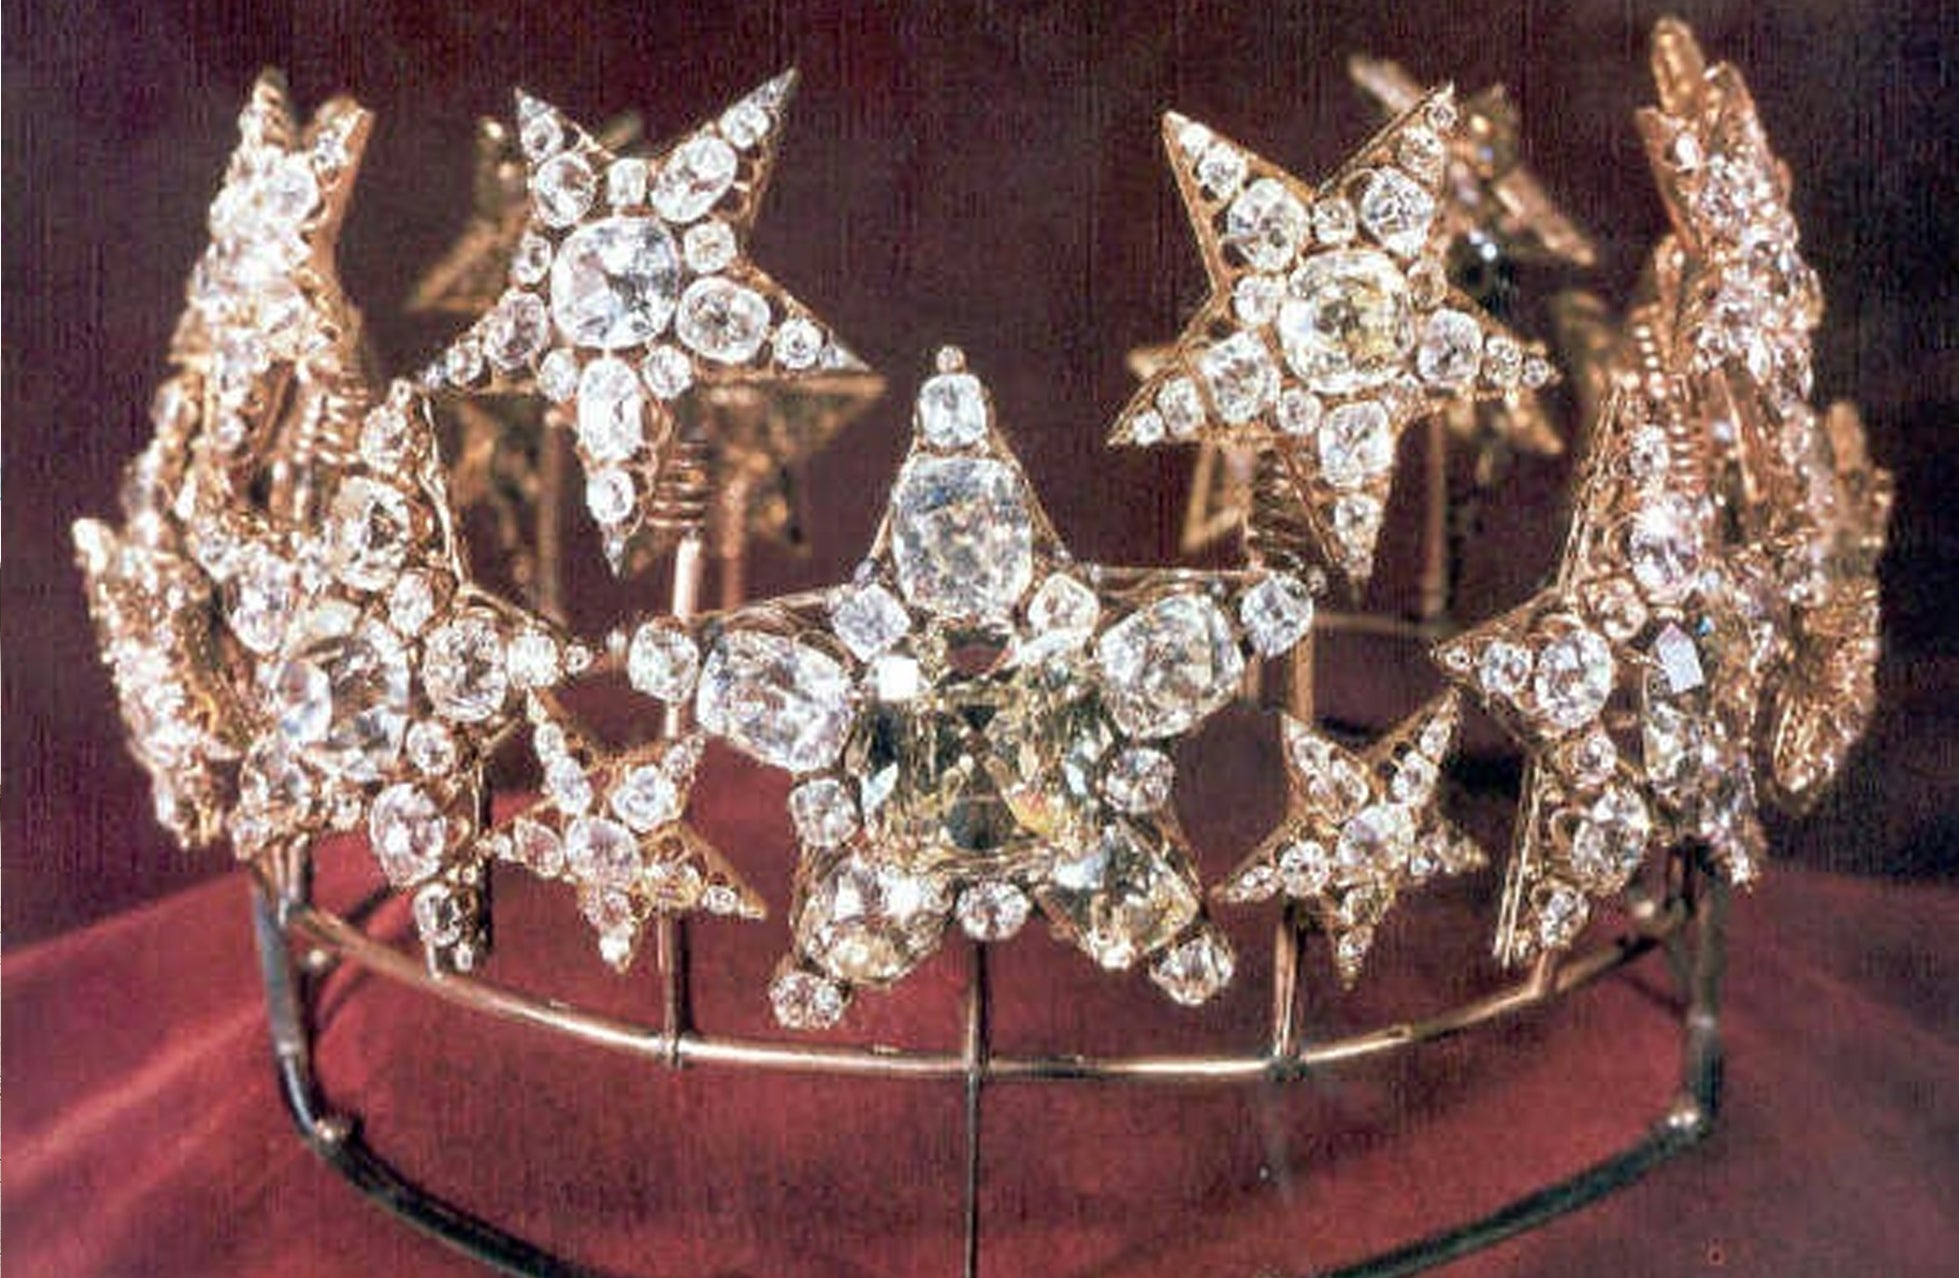 Photograph of the Diadem of the Stars, crafted in 1853 for the then Queen Consort of Portugal Maria Pia of Savoy